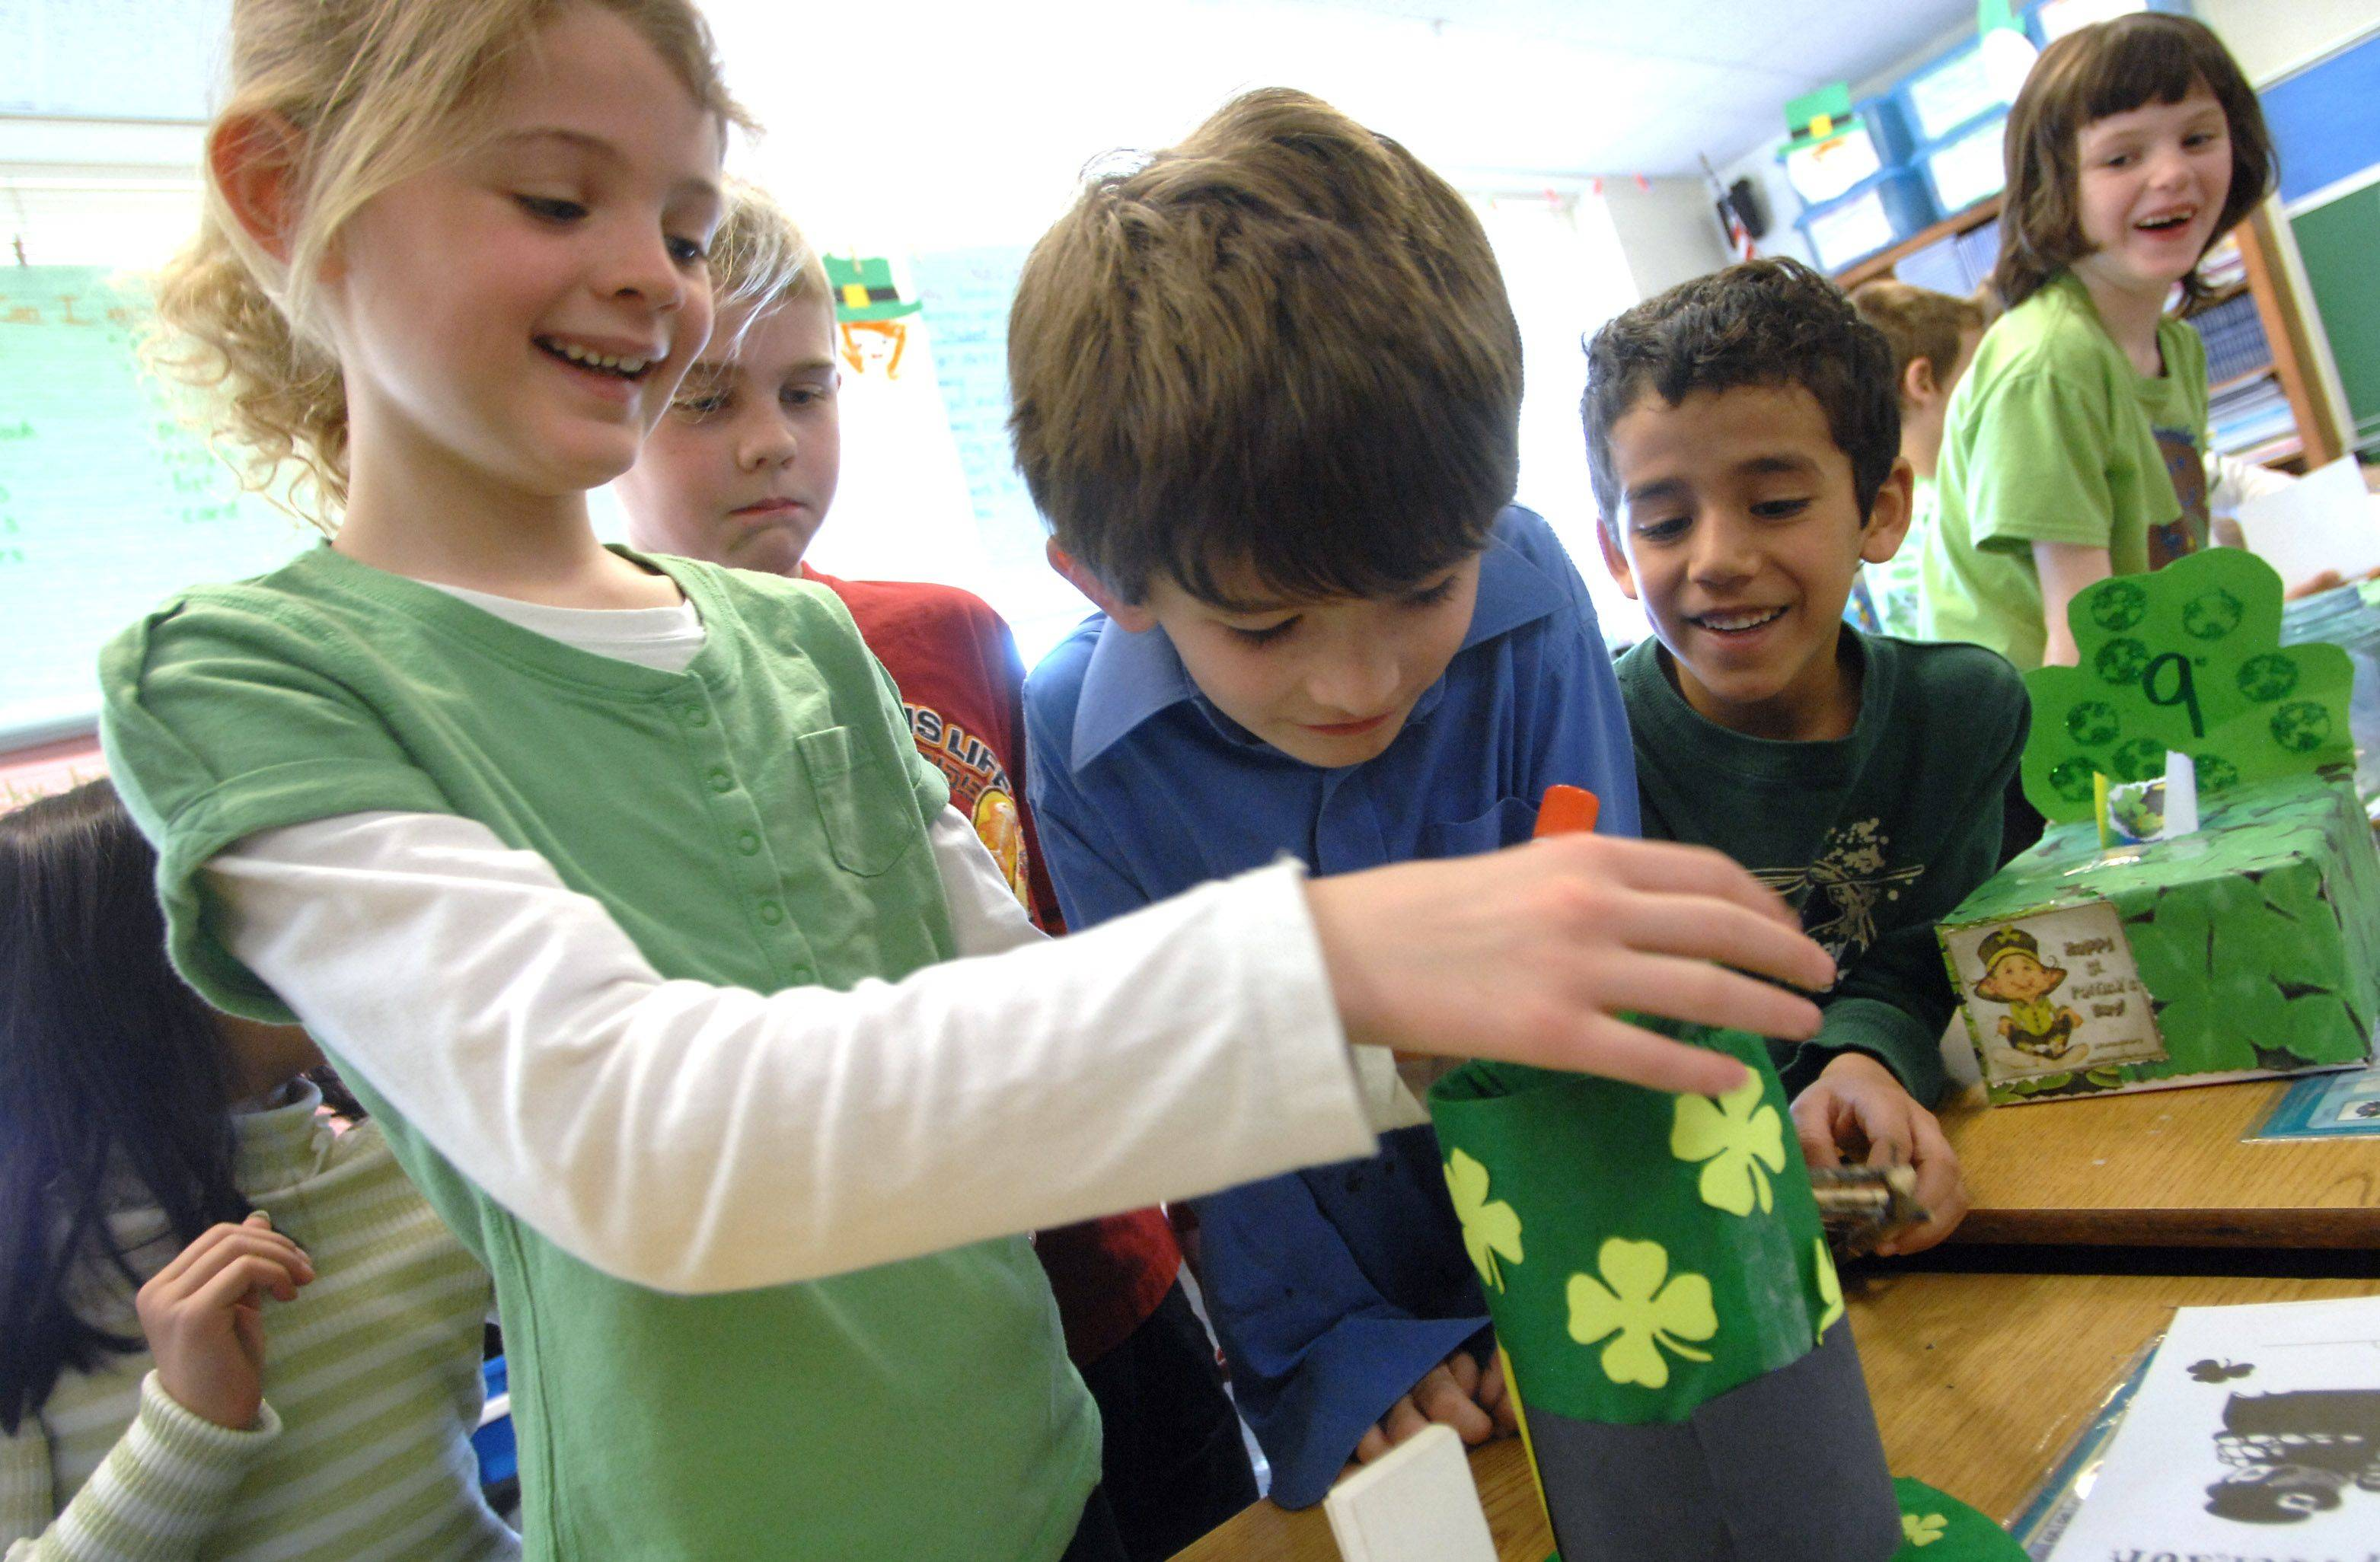 Adler Park School first-grade students show off leprechaun traps they made in celebration of St. Patrick's Day. First-grade student Kaeden Theobald, left, shows how her trap works for students Kyle Otte, left, Ian Earley Tono Carrera and Sarah Cowsky Wednesday in Libertyville.